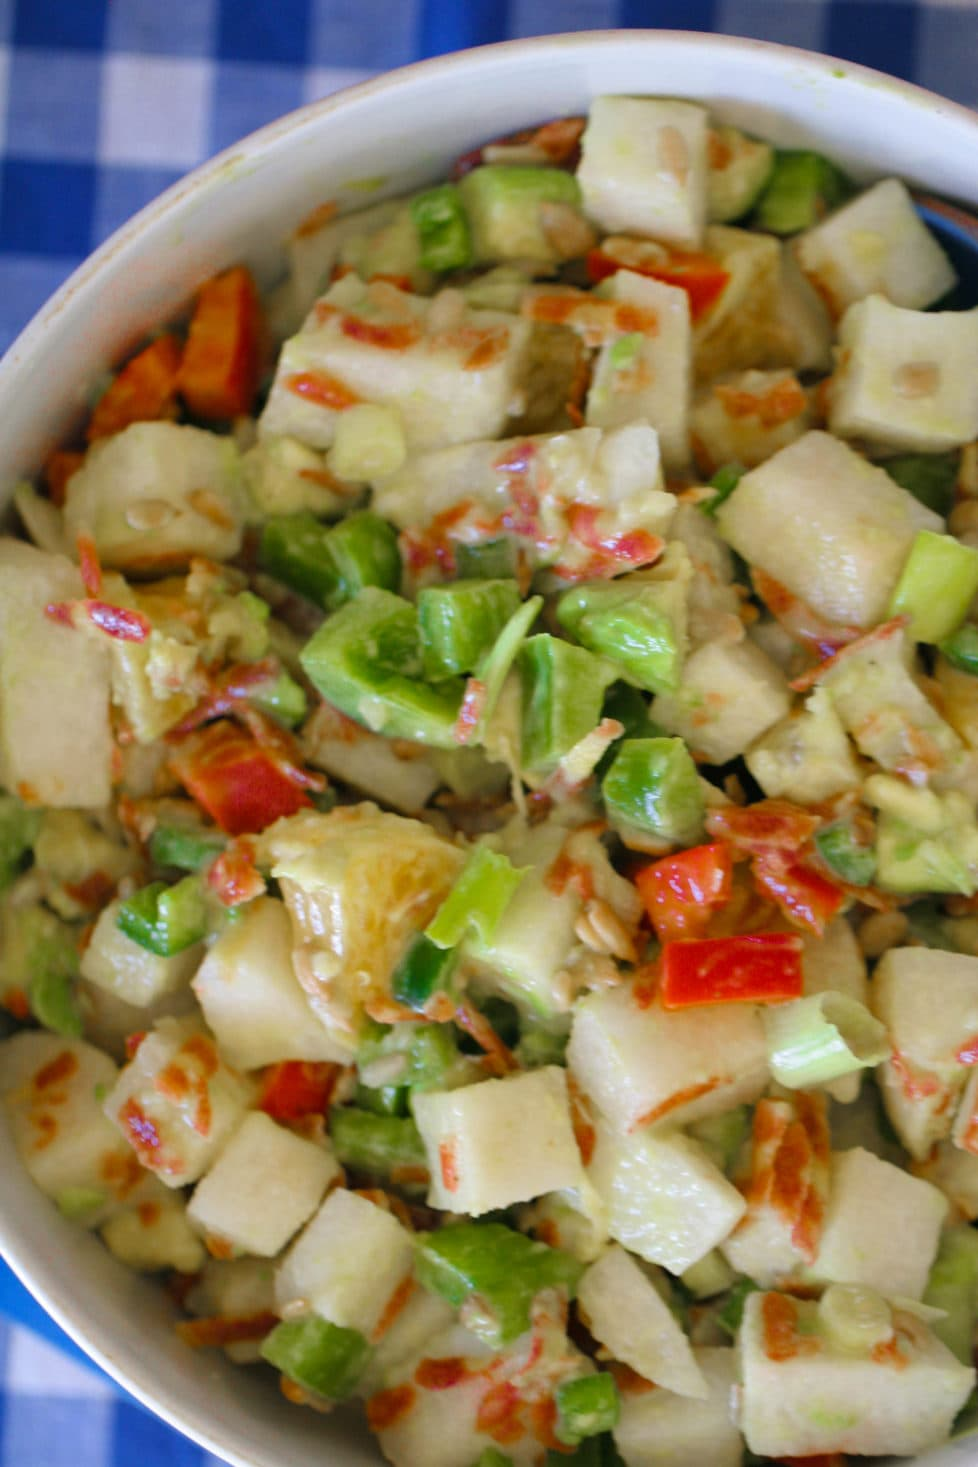 Summer Jicama Salad